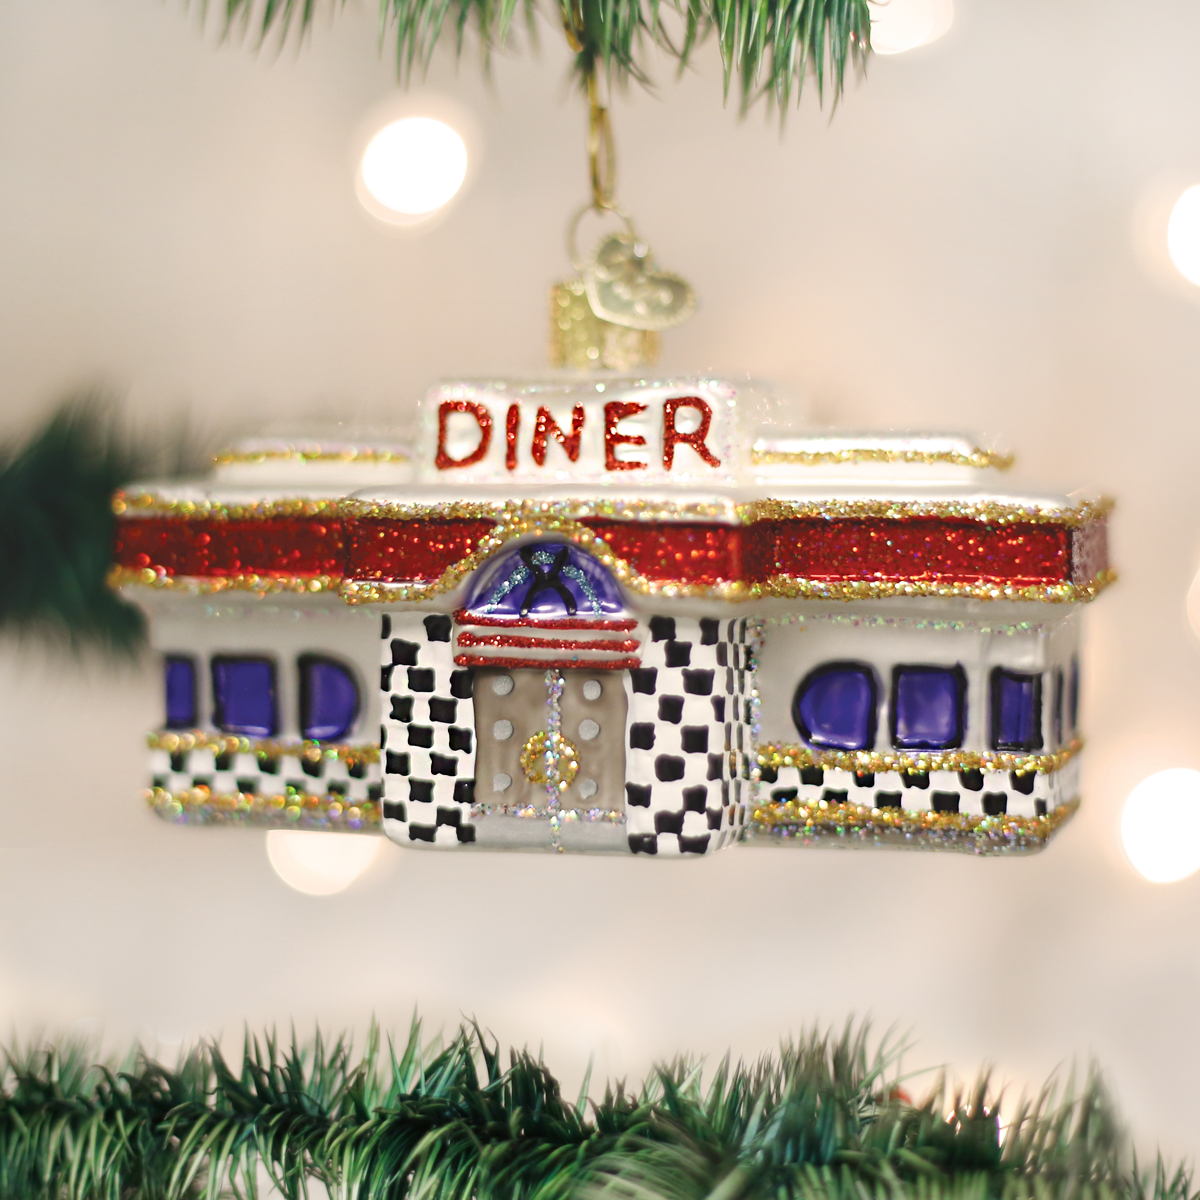 Diner Ornament - Old World Christmas